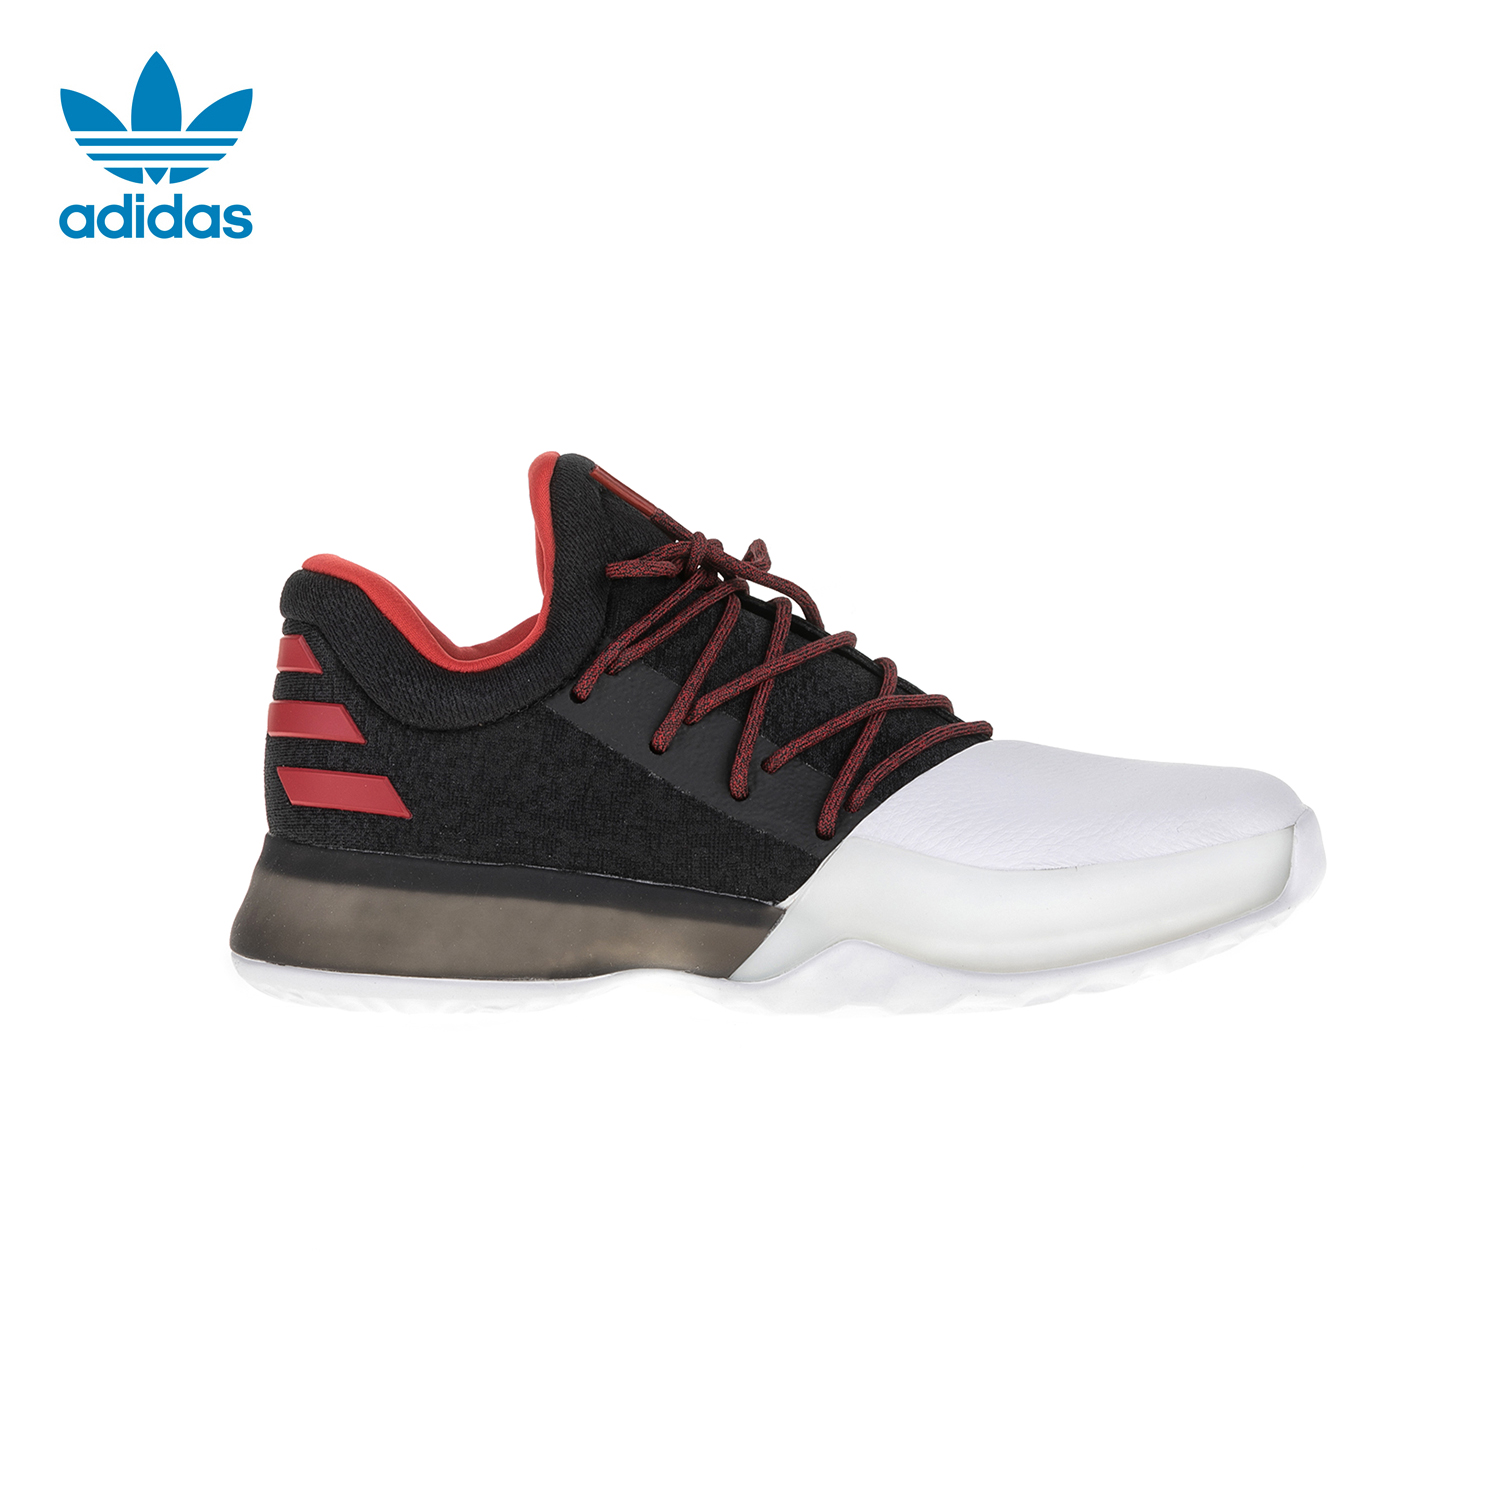 buy online 73710 3dc74 adidas Originals - Παιδικά παπούτσια μπάσκετ adidas Crazy X J μαύρα-λευκά